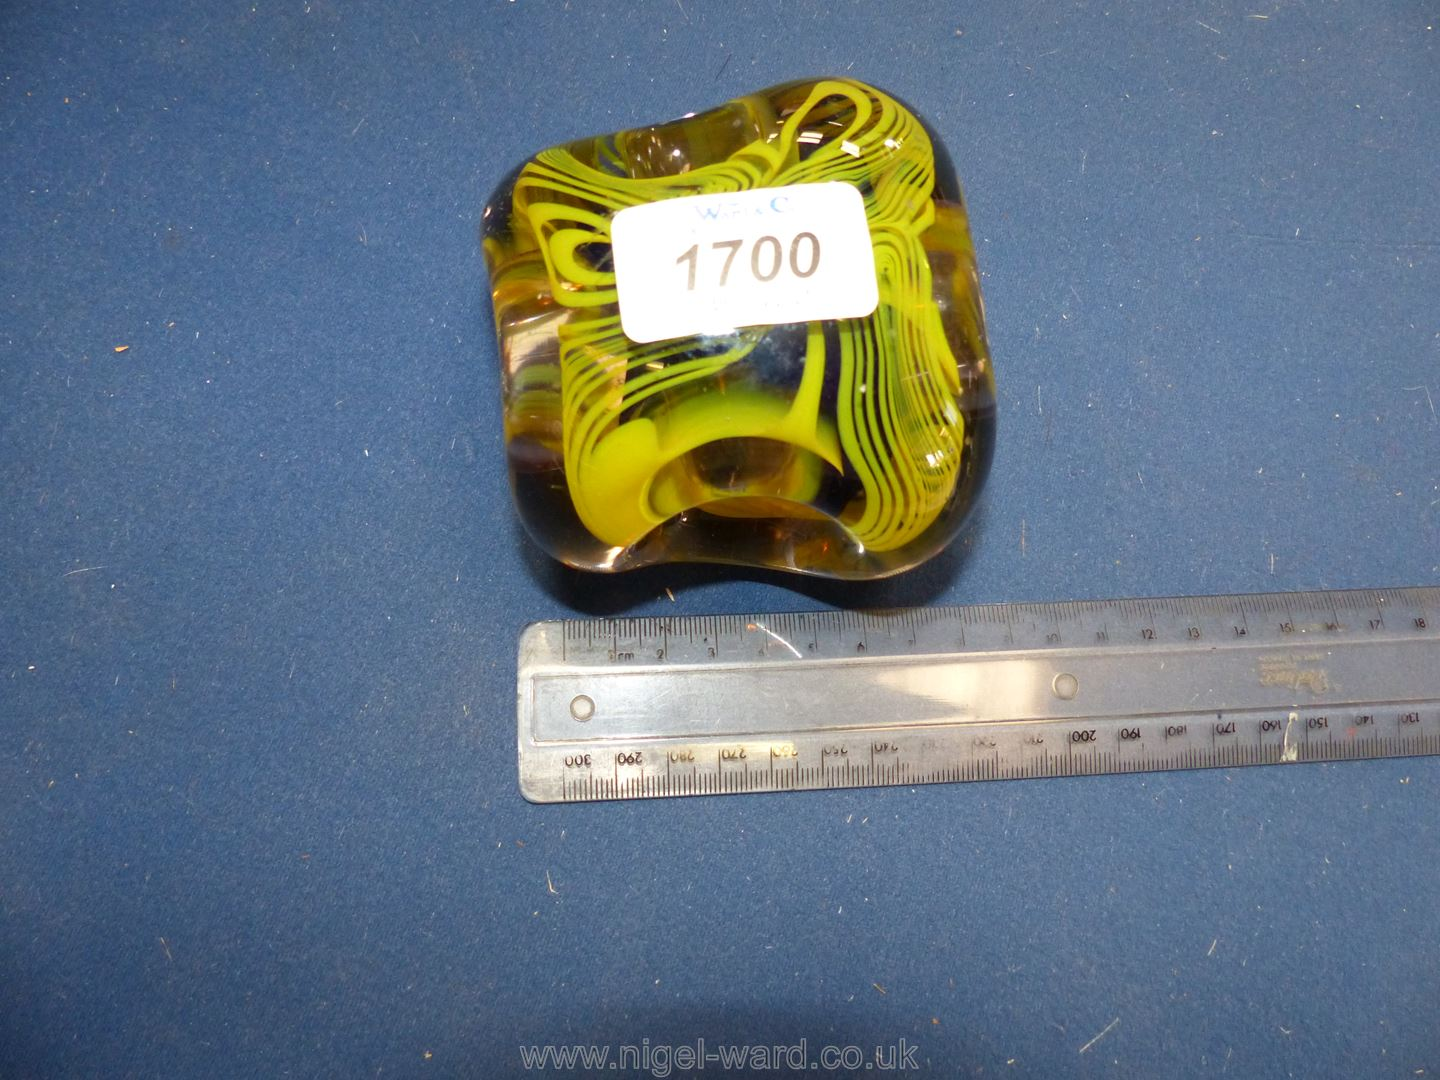 A Karlin Rushbrooke paperweight in yellow and black, - Image 4 of 6